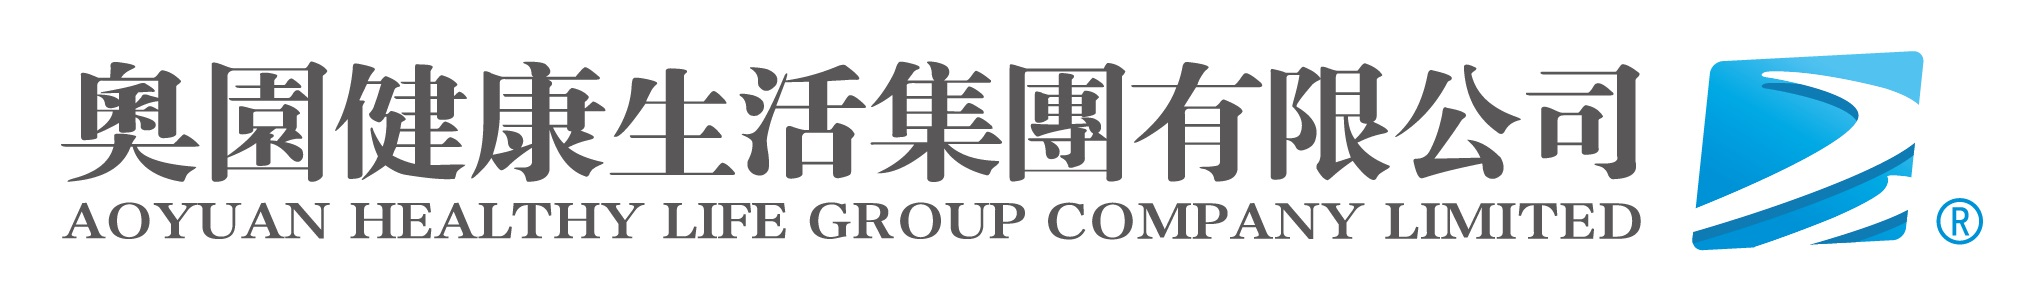 Aoyuan Healthy Life Group Company Limited